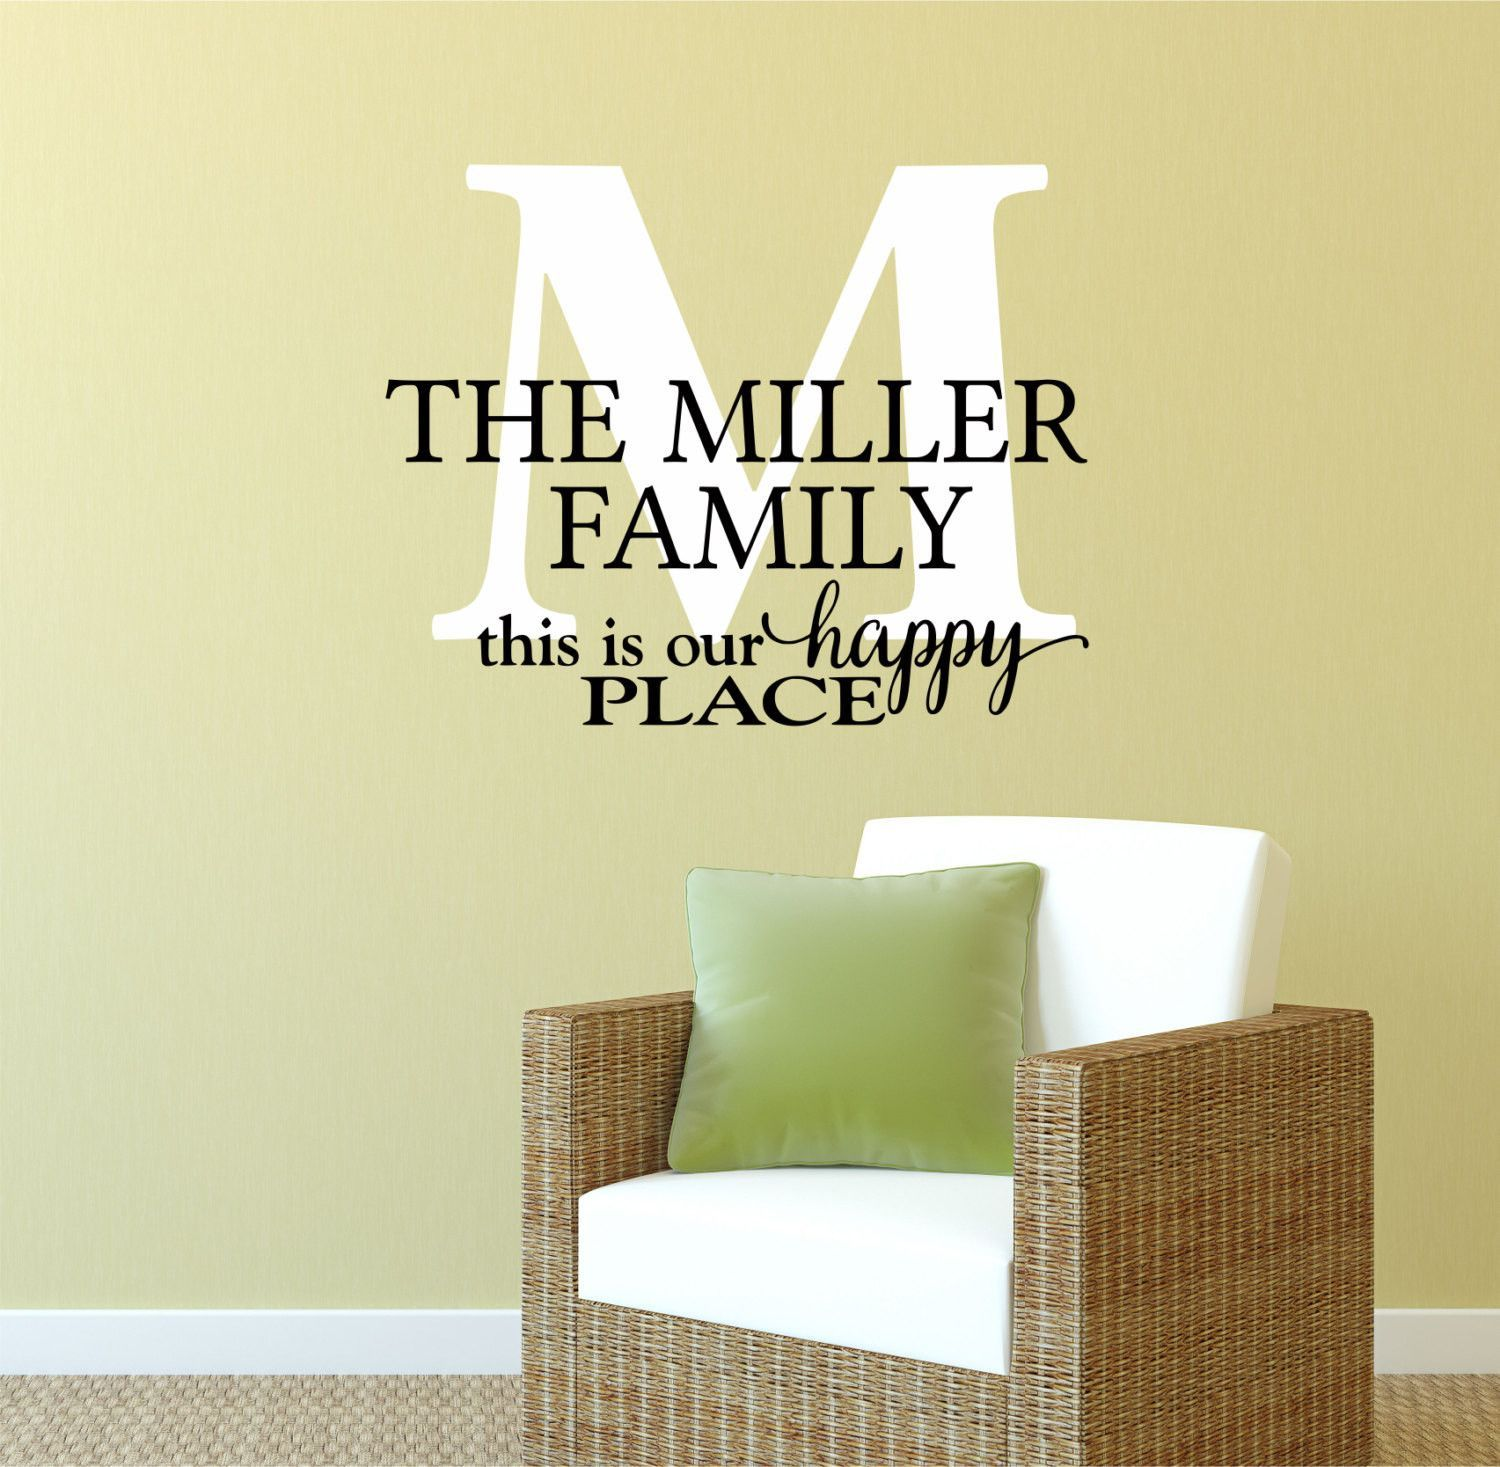 Family Name Decals - by Decor Designs Decals, This Is Our Happy ...